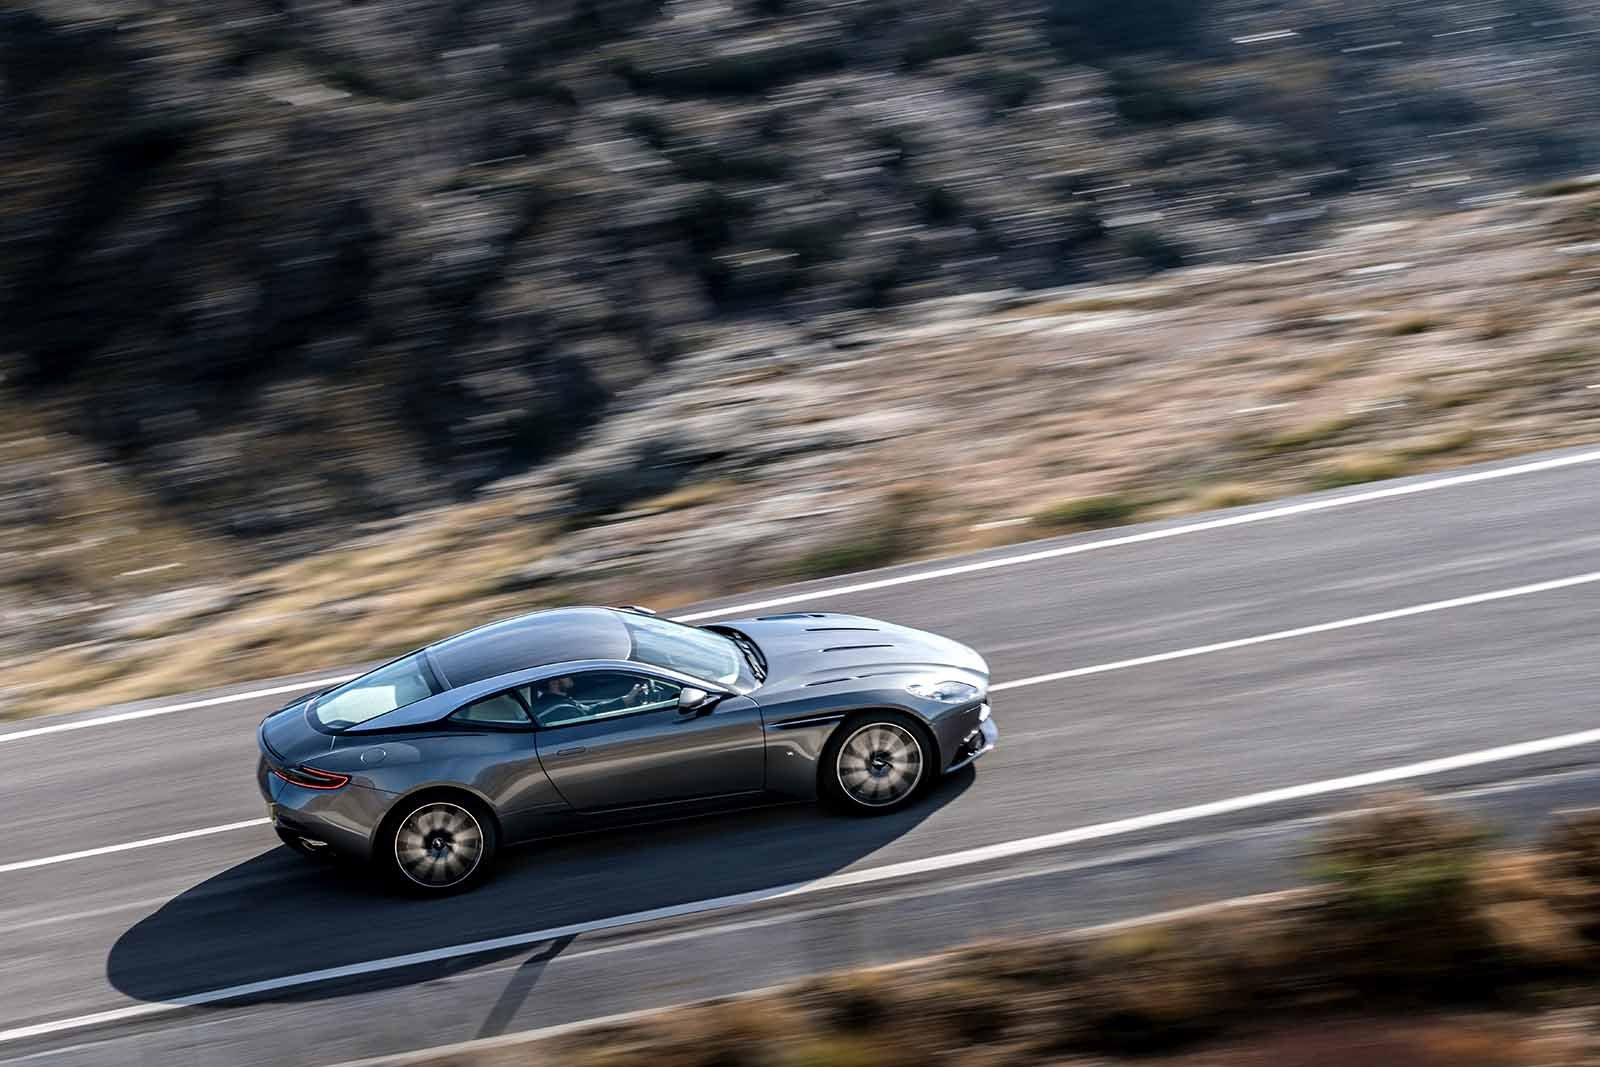 Aston Martin DB11 On The Road